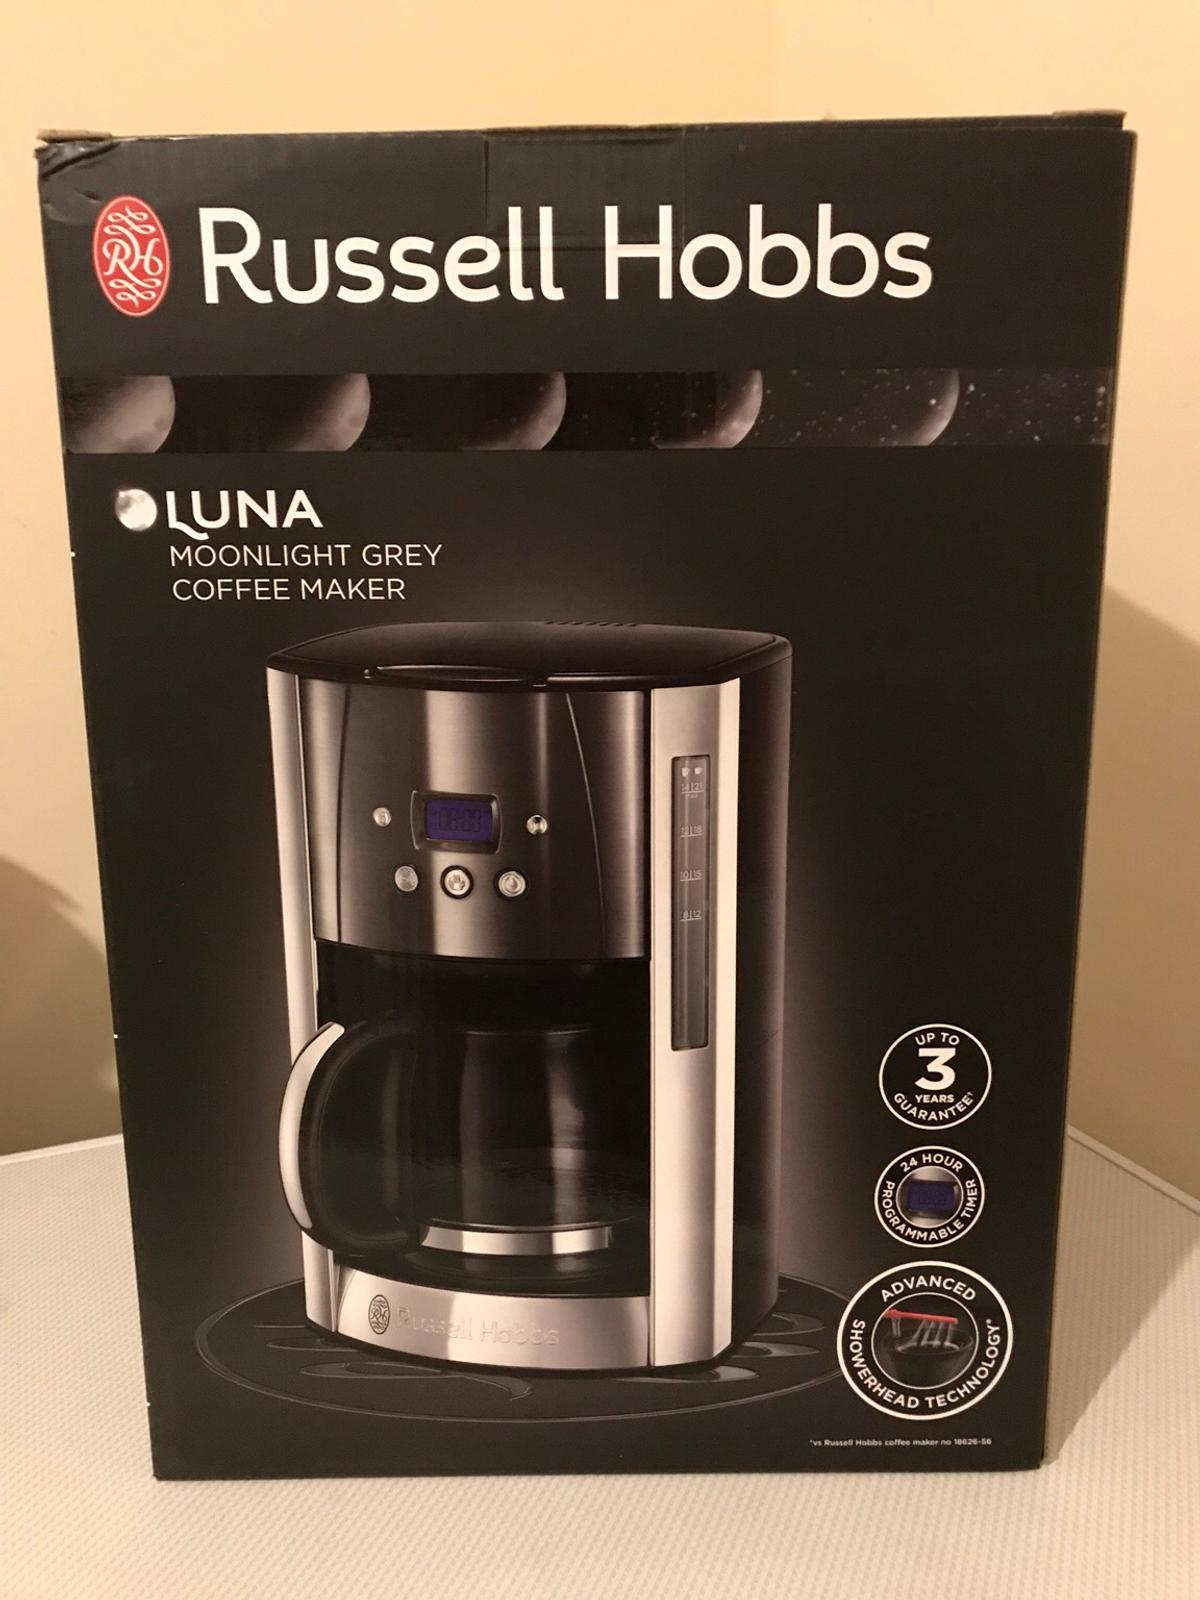 Russell hobbs Luna coffee machine